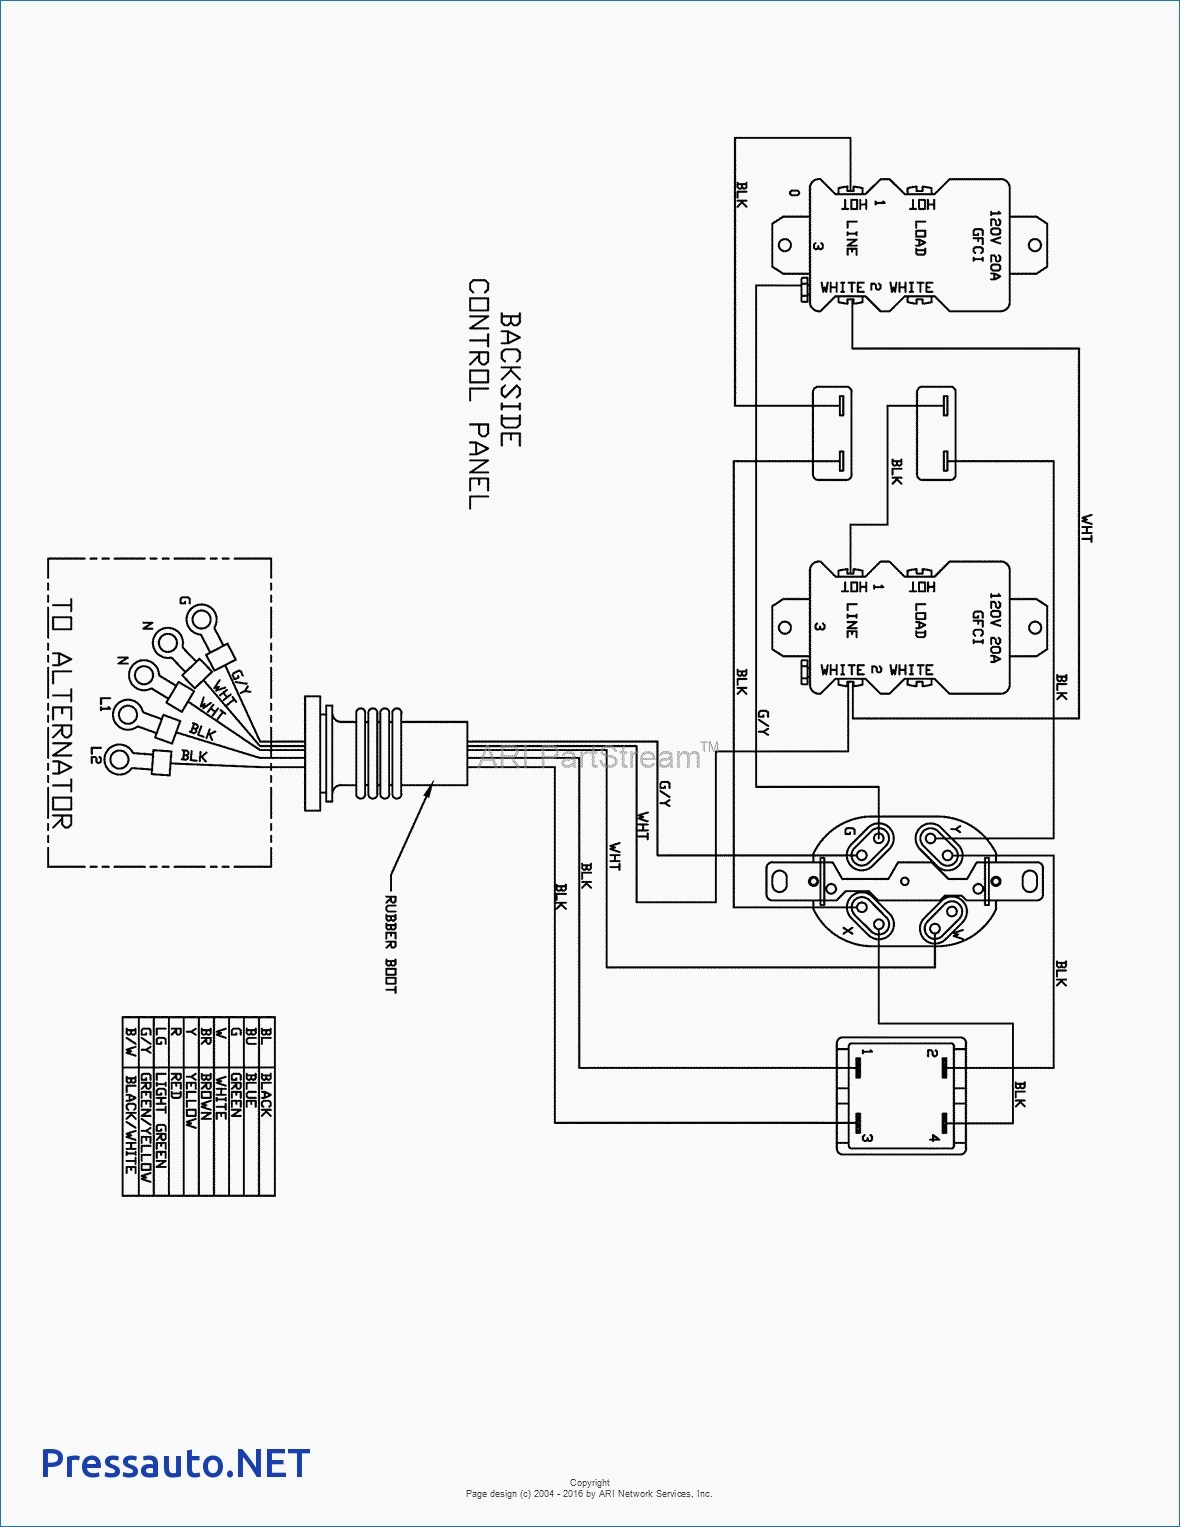 Generac Start Stop Switch Wiring Diagram - Automotive Diagrams Design  circuit-piece - circuit-piece.radioe.itRadio e